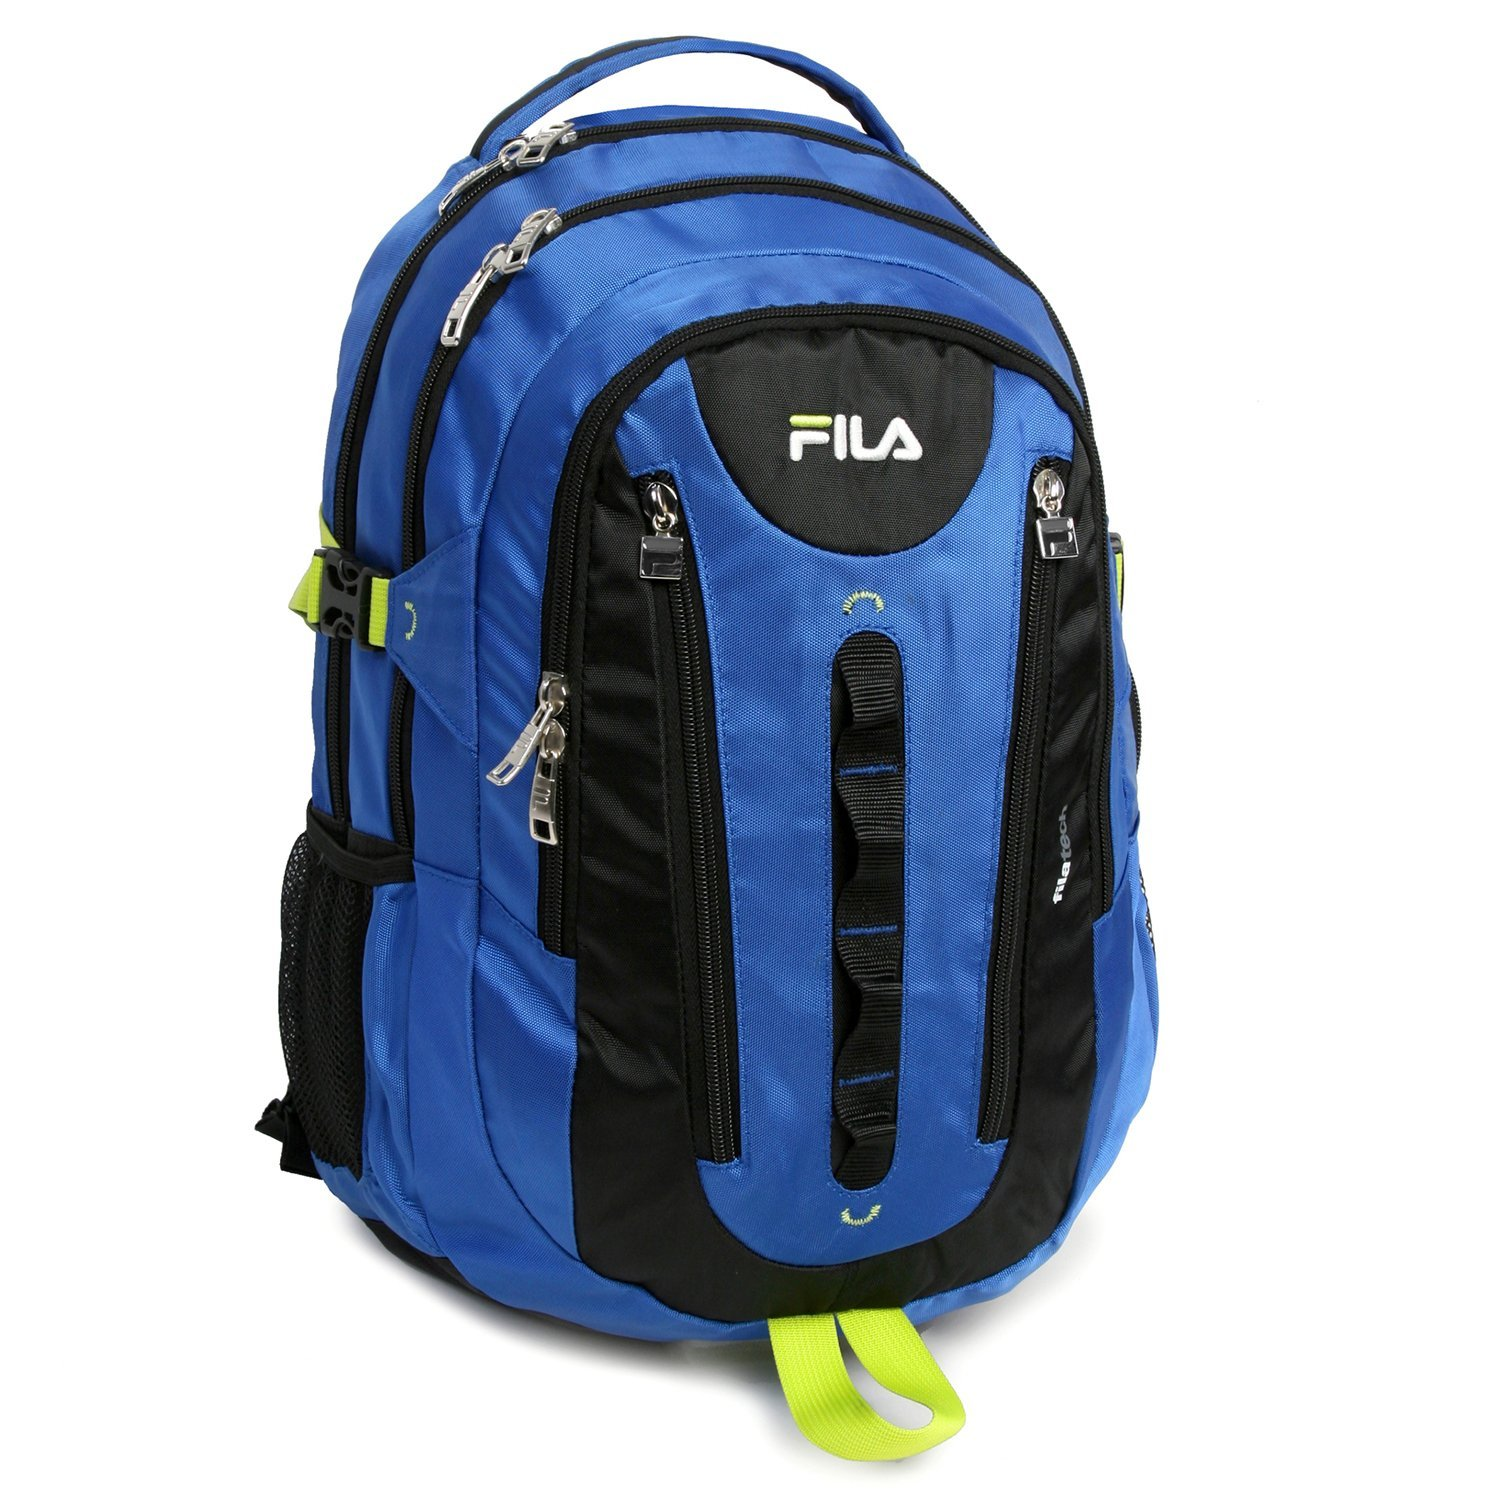 Buy Fila Pinnacle 5 Pocket Laptop Backpack in Cheap Price on Alibaba.com